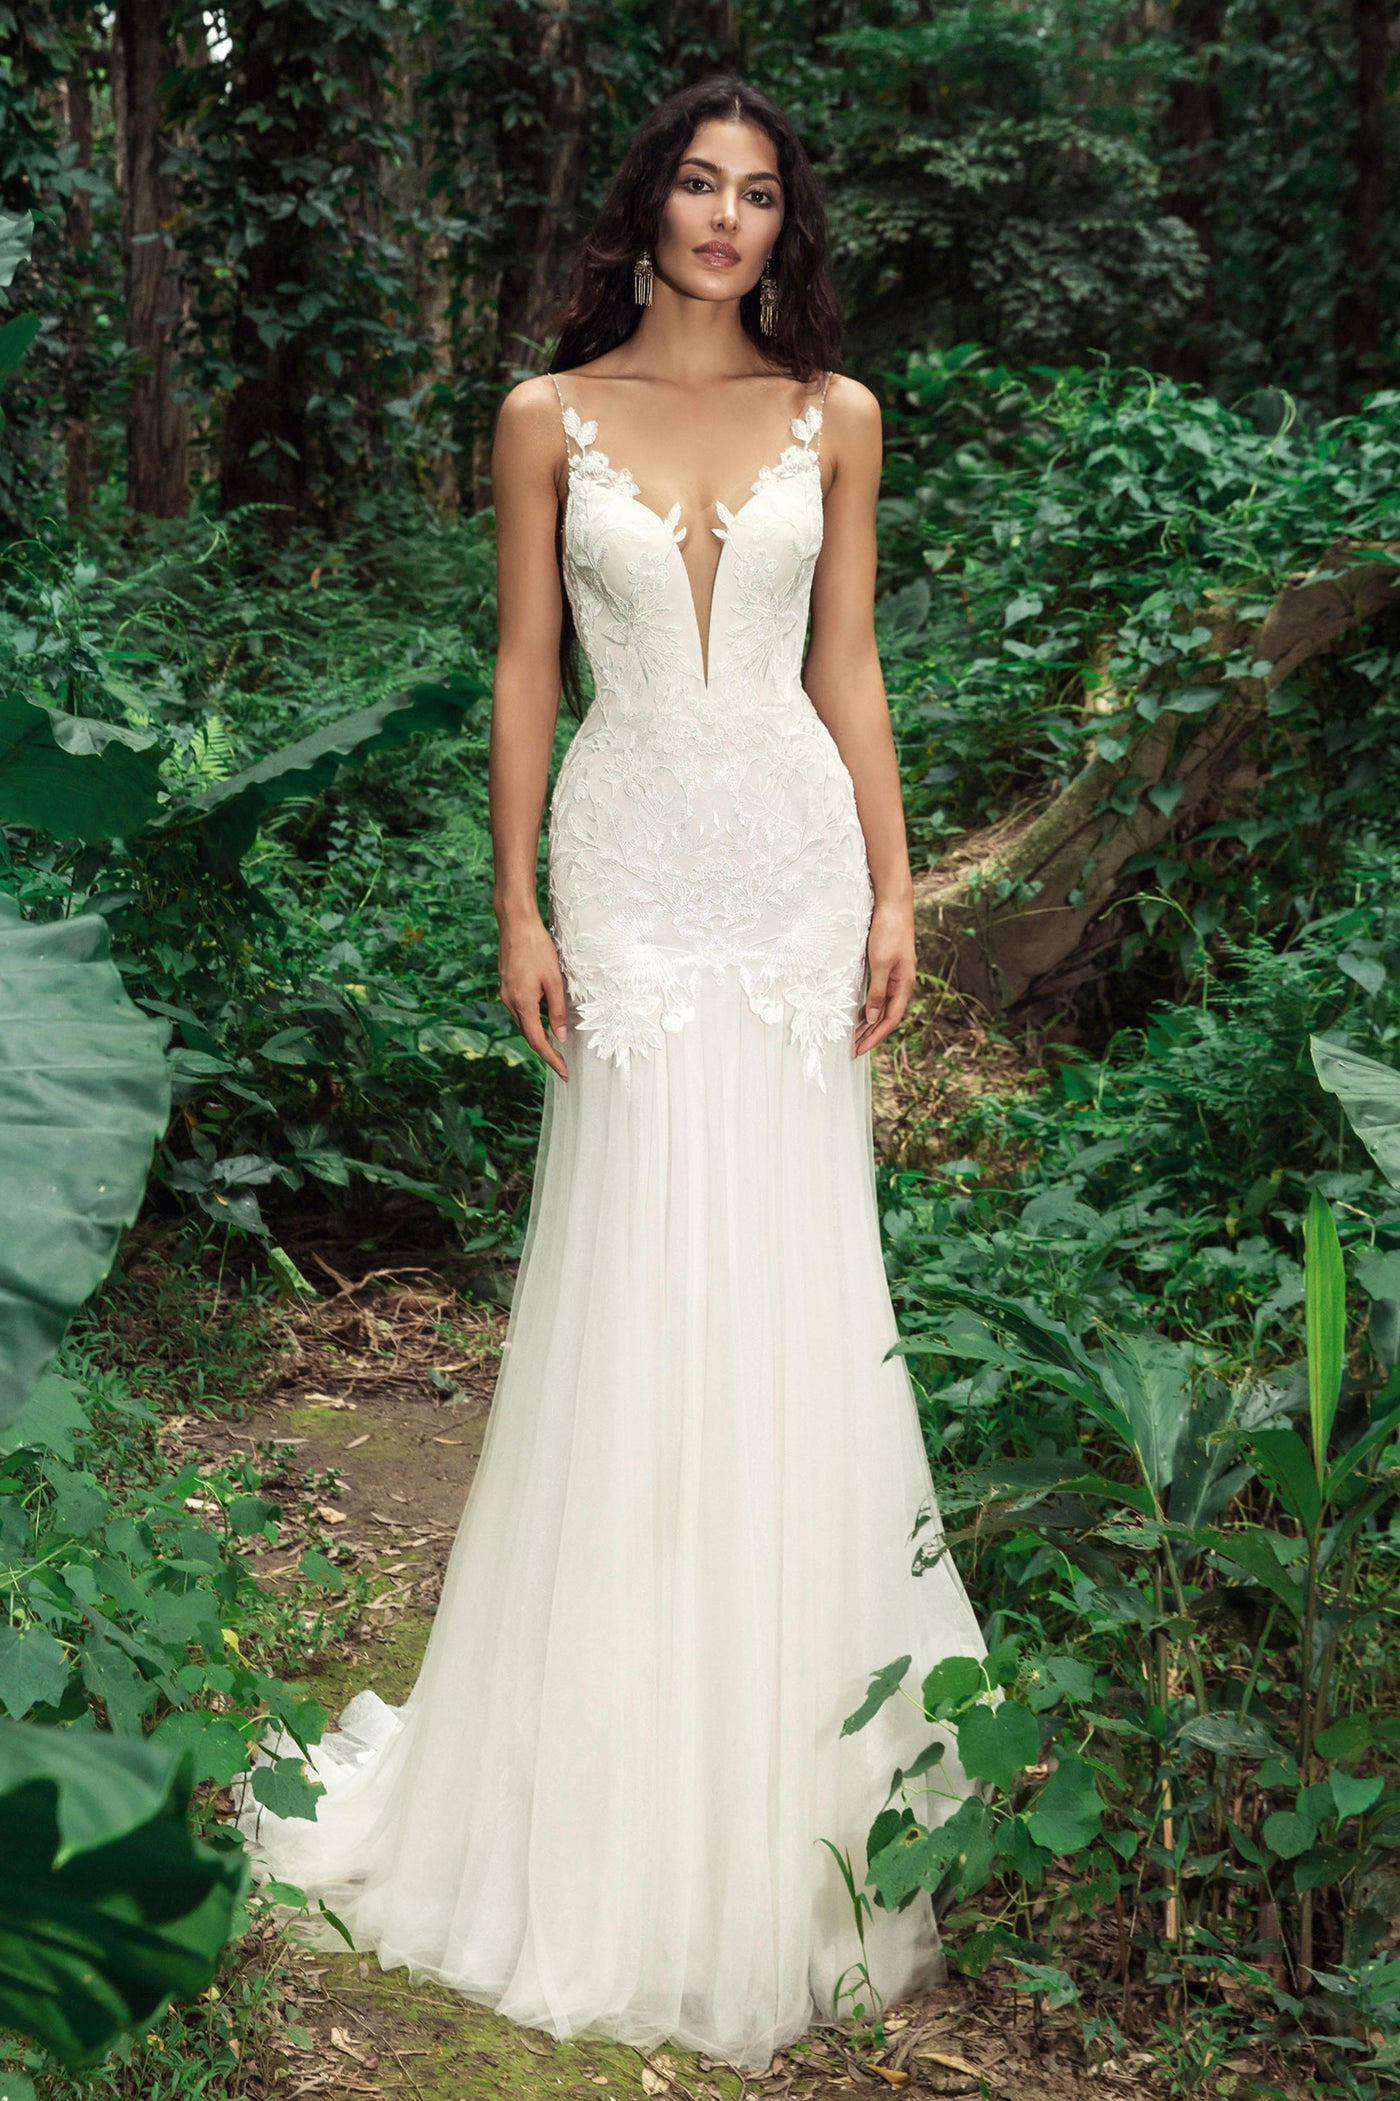 Fauna, Gown, Chic Nostalgia - Eternal Bridal